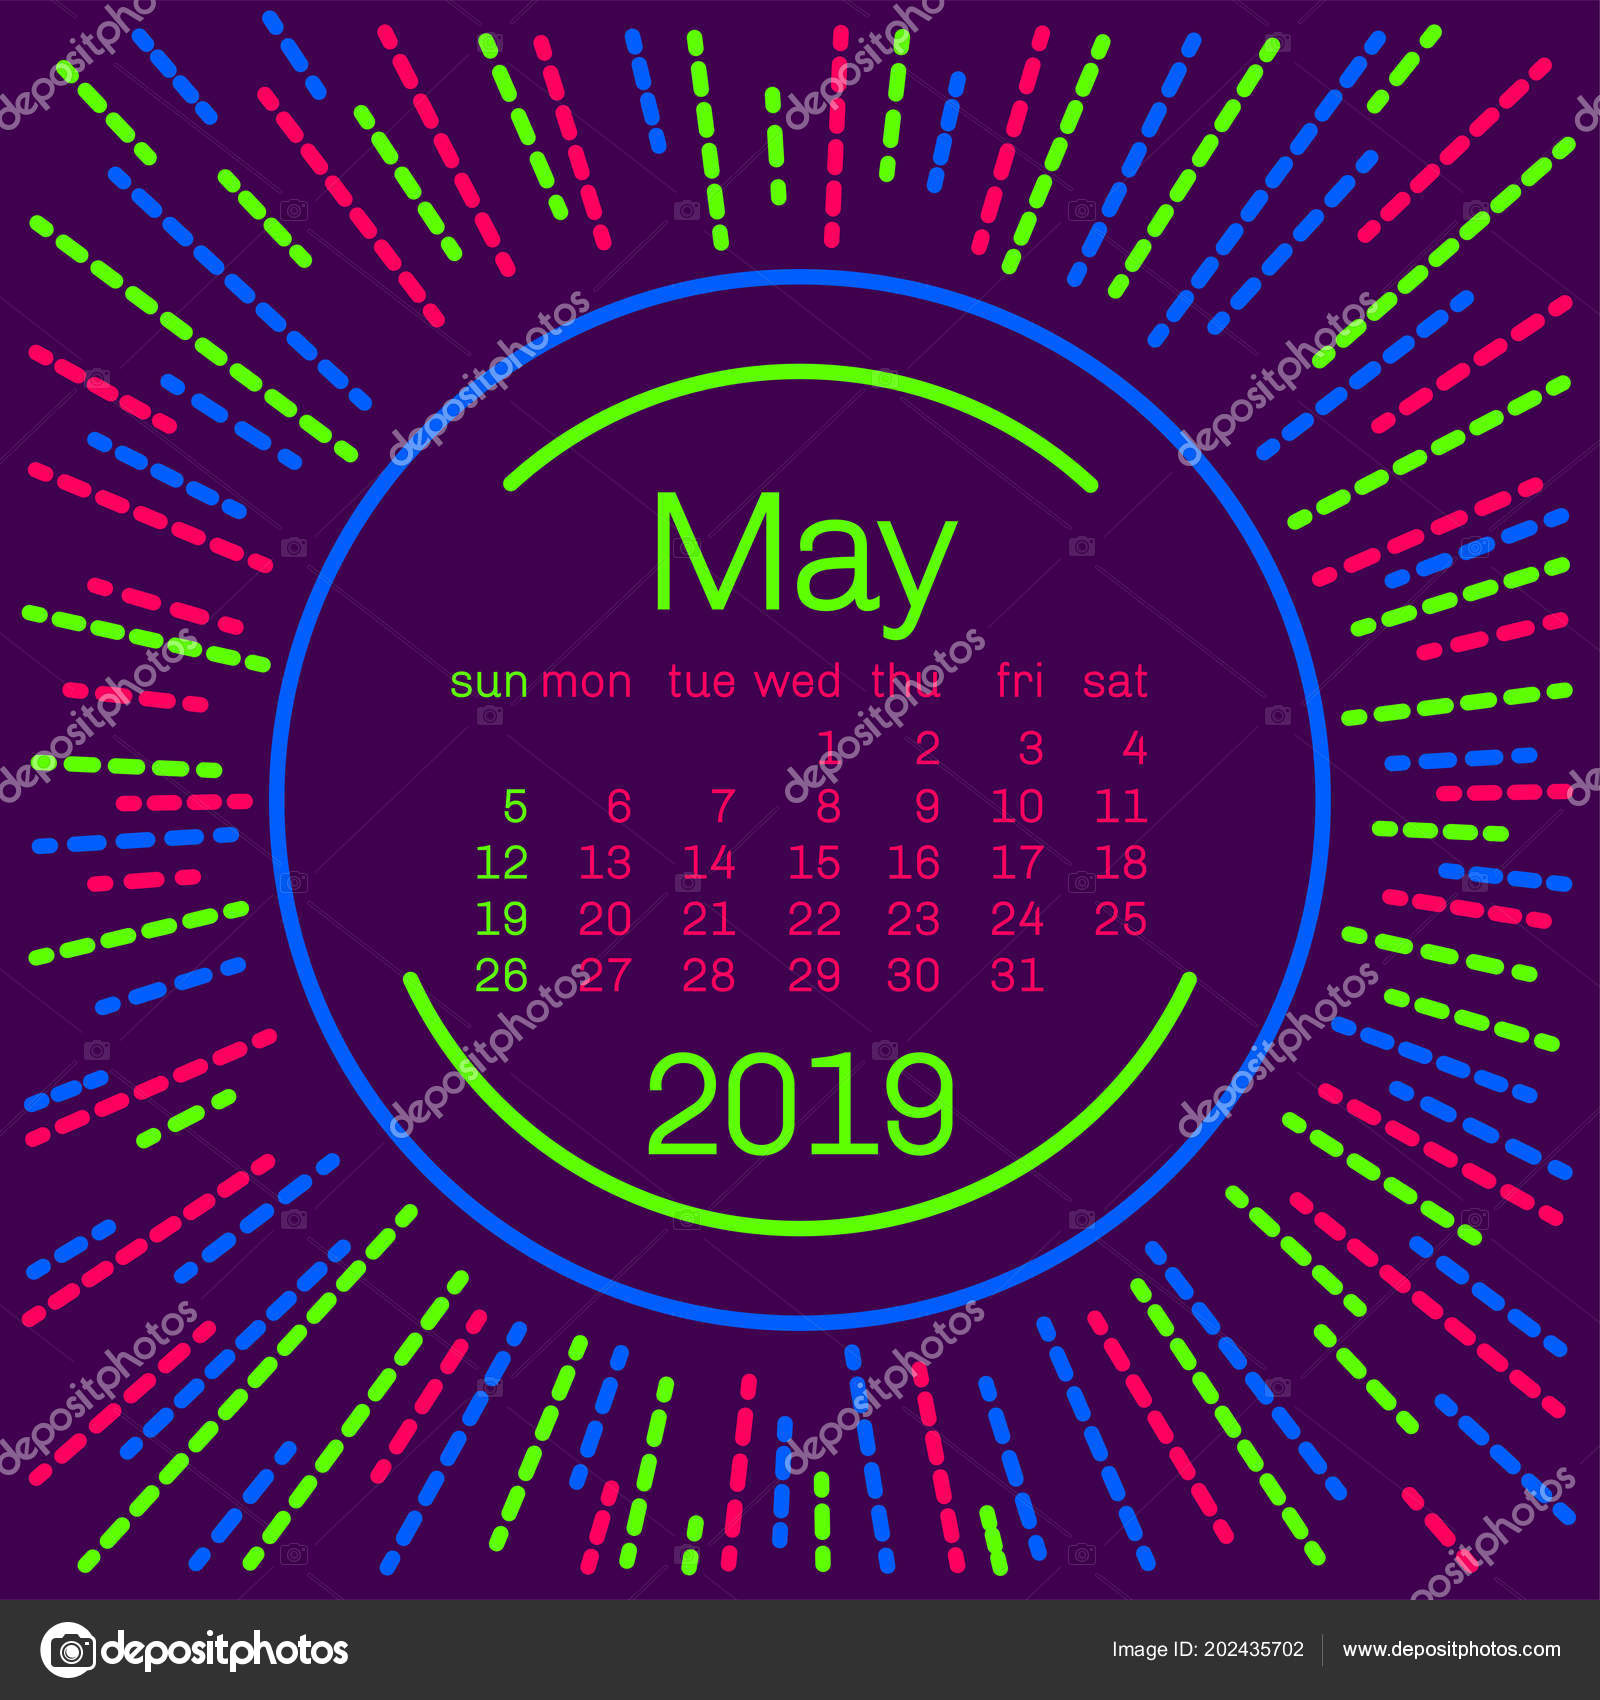 2019 May Calendar Page Memphis Style Poster Concept